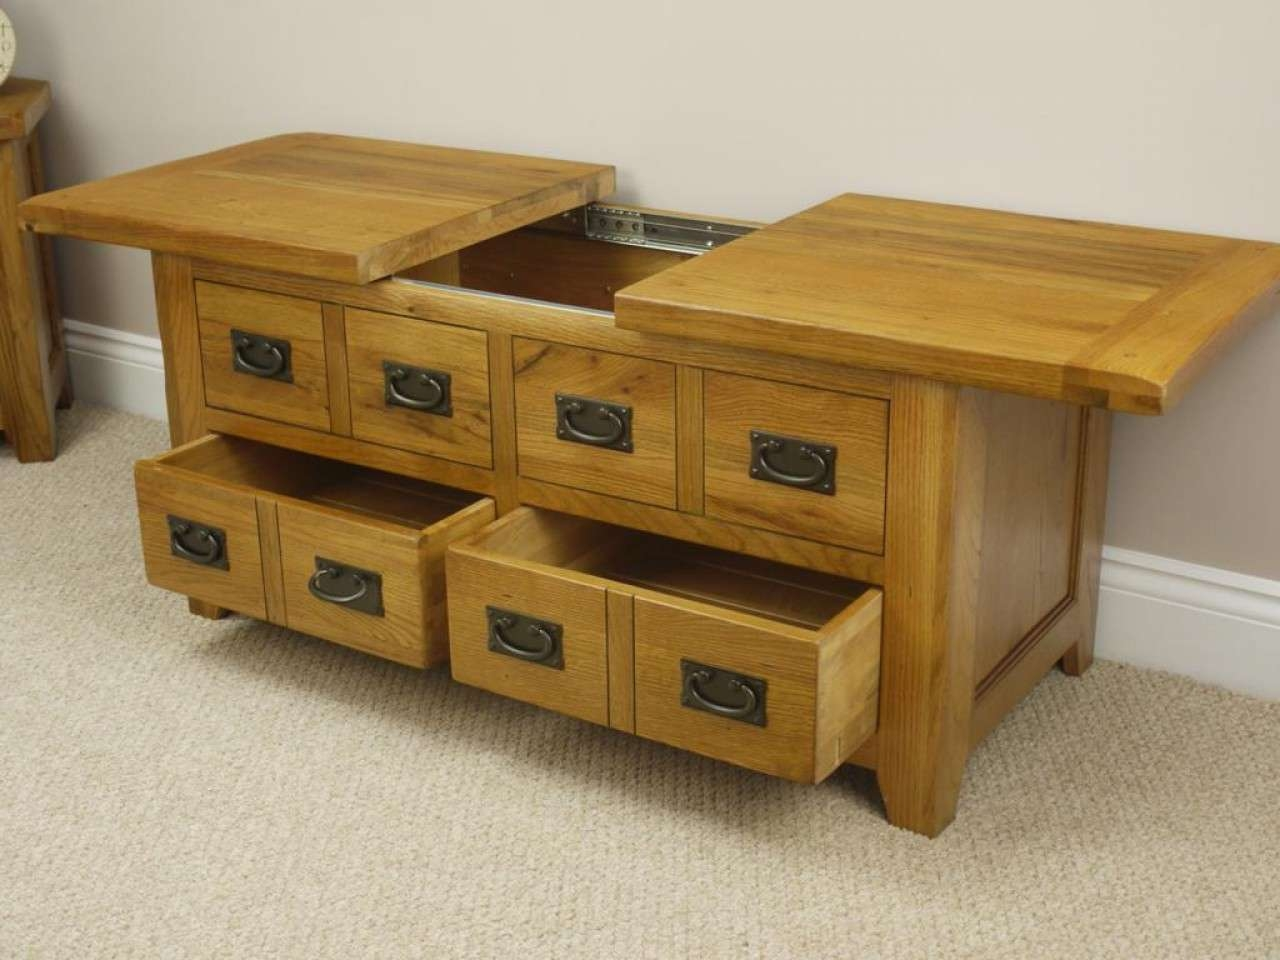 Rustic Storage Coffee Table Style — Home Design Ideas Within Well Known Square Coffee Table Storages (View 16 of 20)